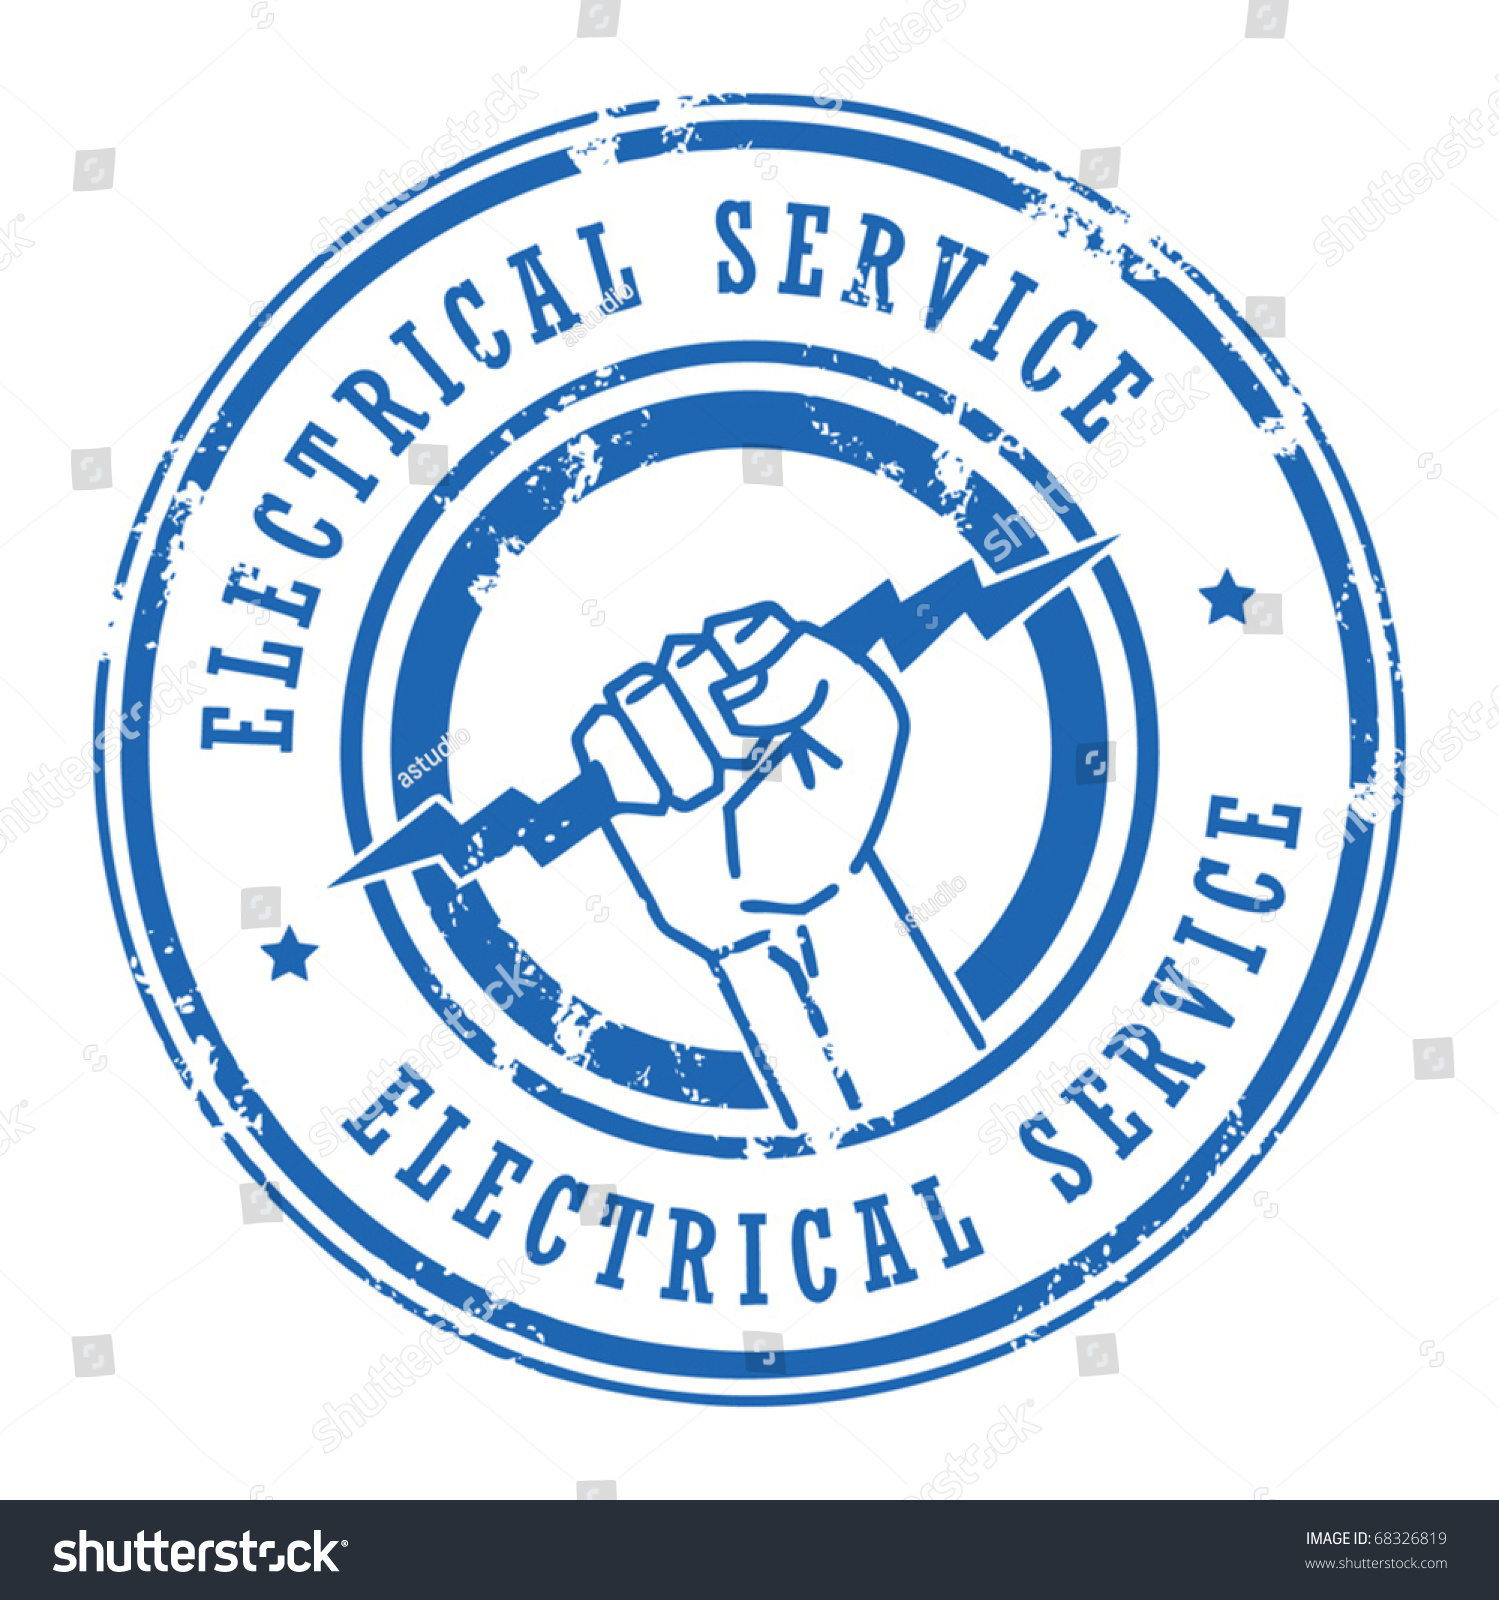 electricians at work clip art - photo #31